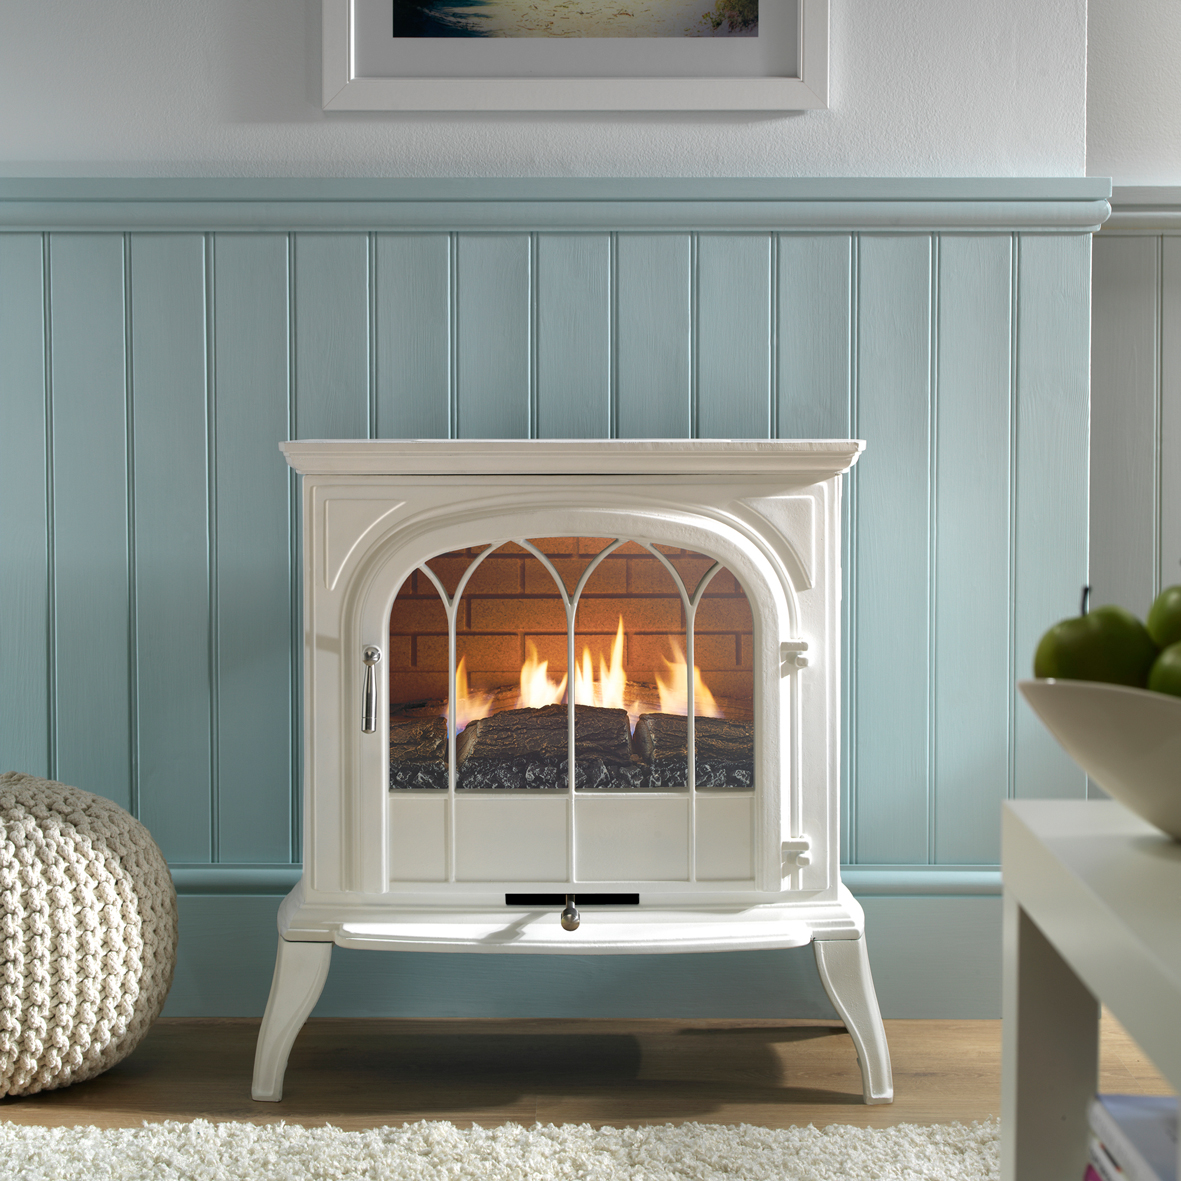 The new Leirvik Gas Stove, from £794.00 available from B&Q: www.DIY.com